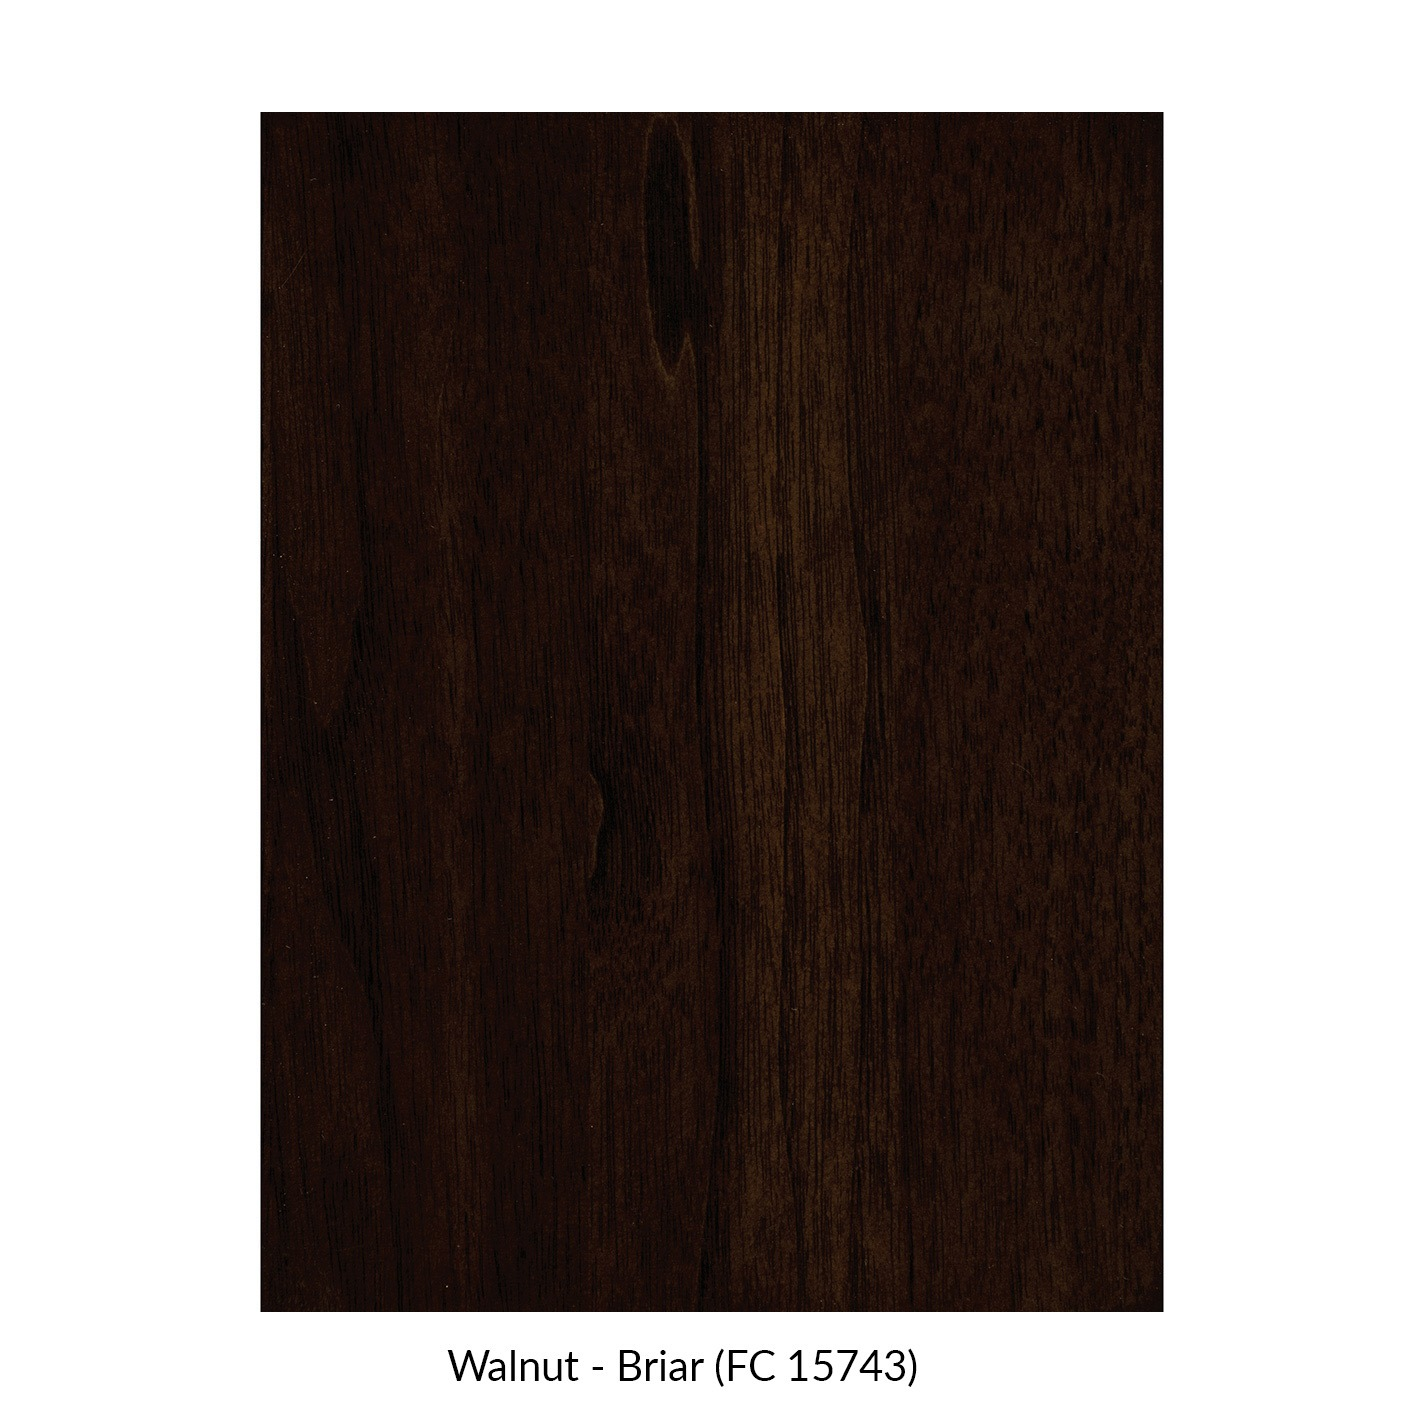 spectrum-walnut-briar-fc-15743.jpg